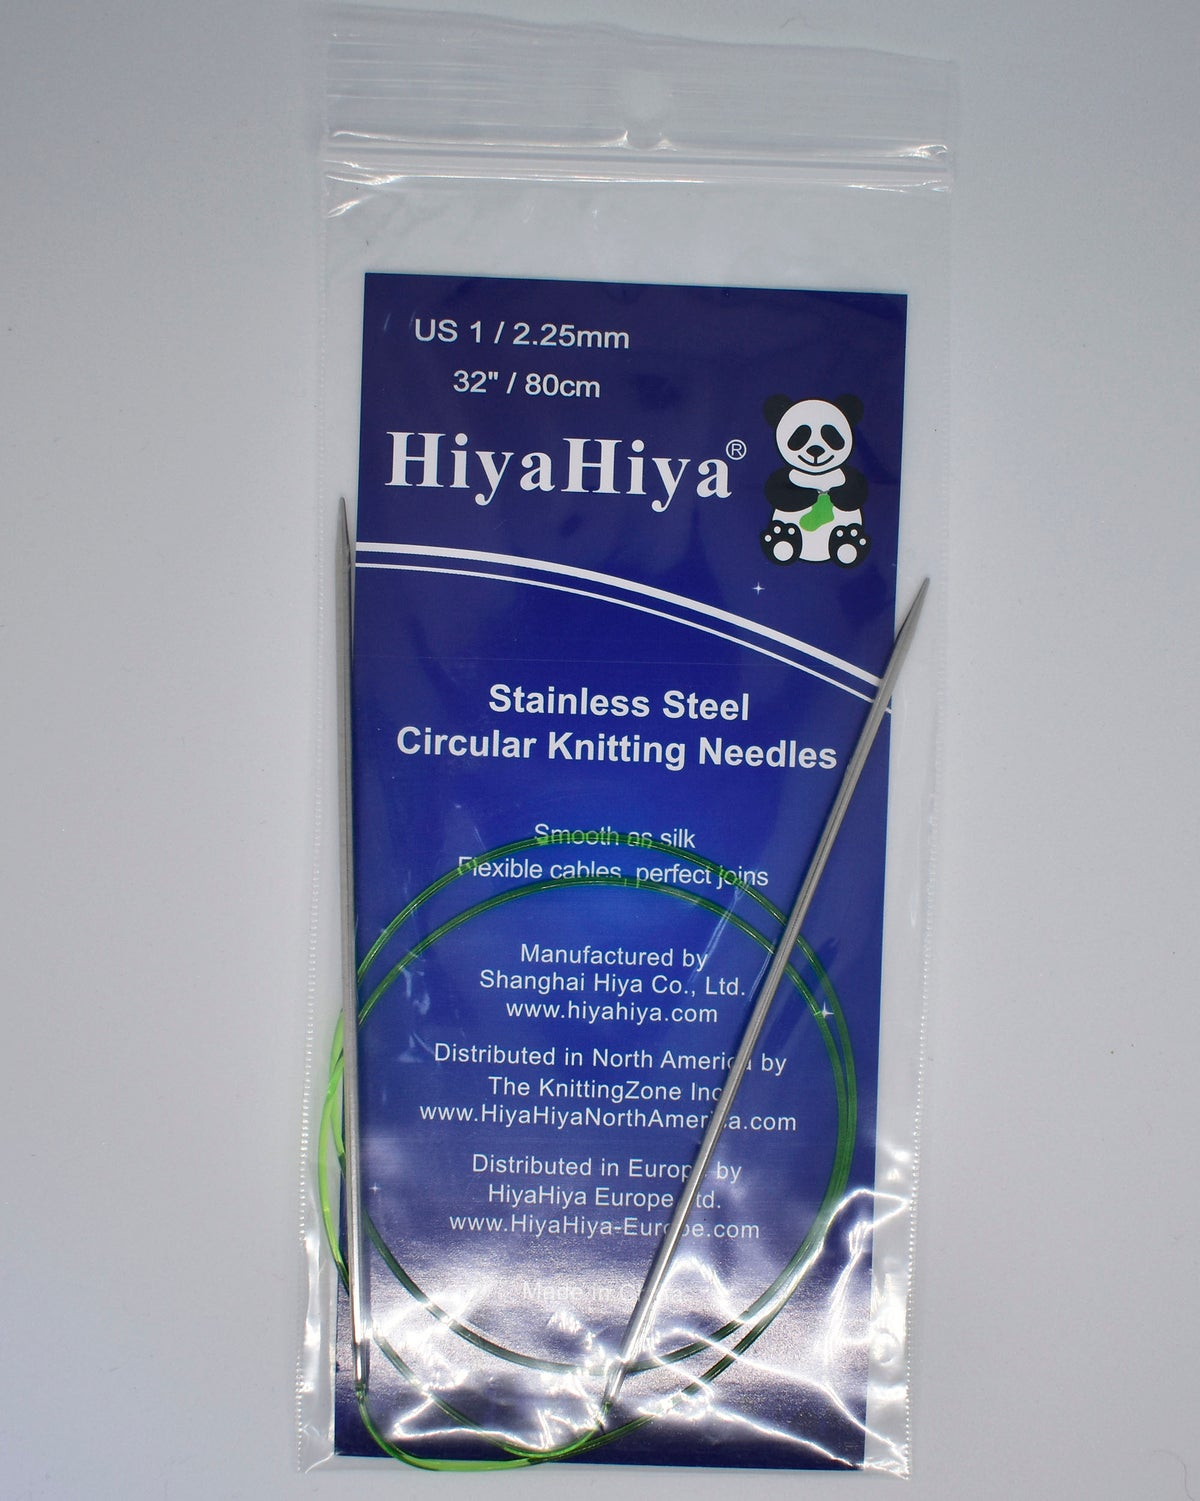 HiyaHiya Circular knitting needles - Steel